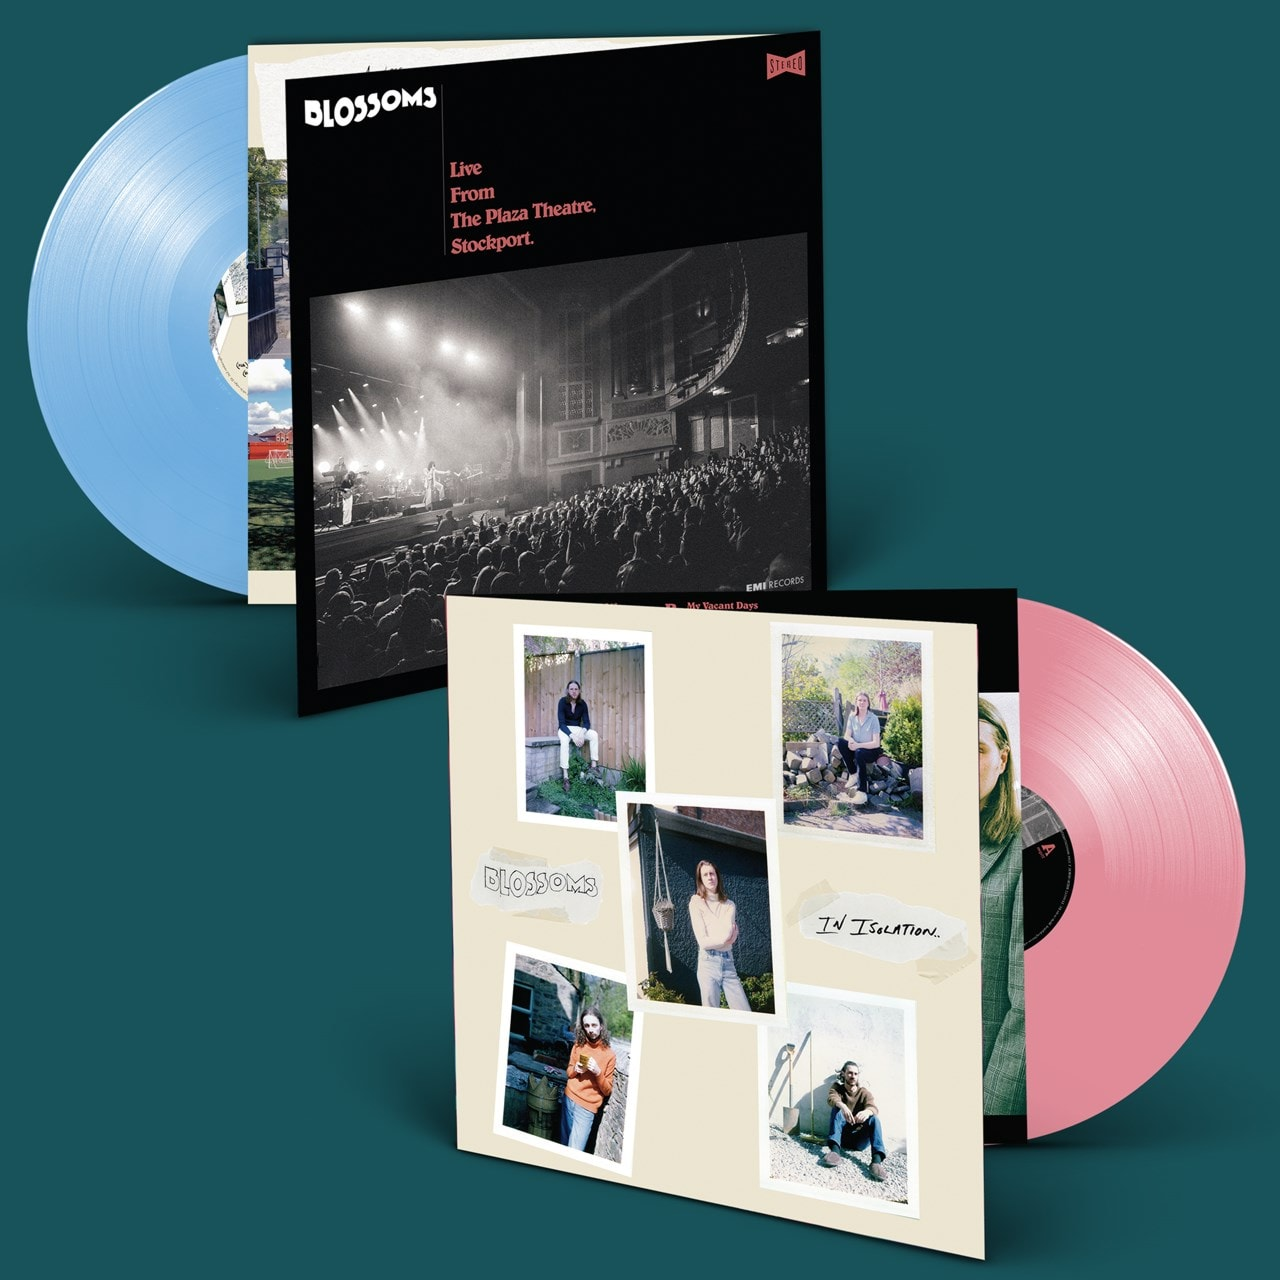 Blossoms – Live From The Plaza Theatre Stockport In Isolation 2LP Blue/Pink Colour Vinyl Album